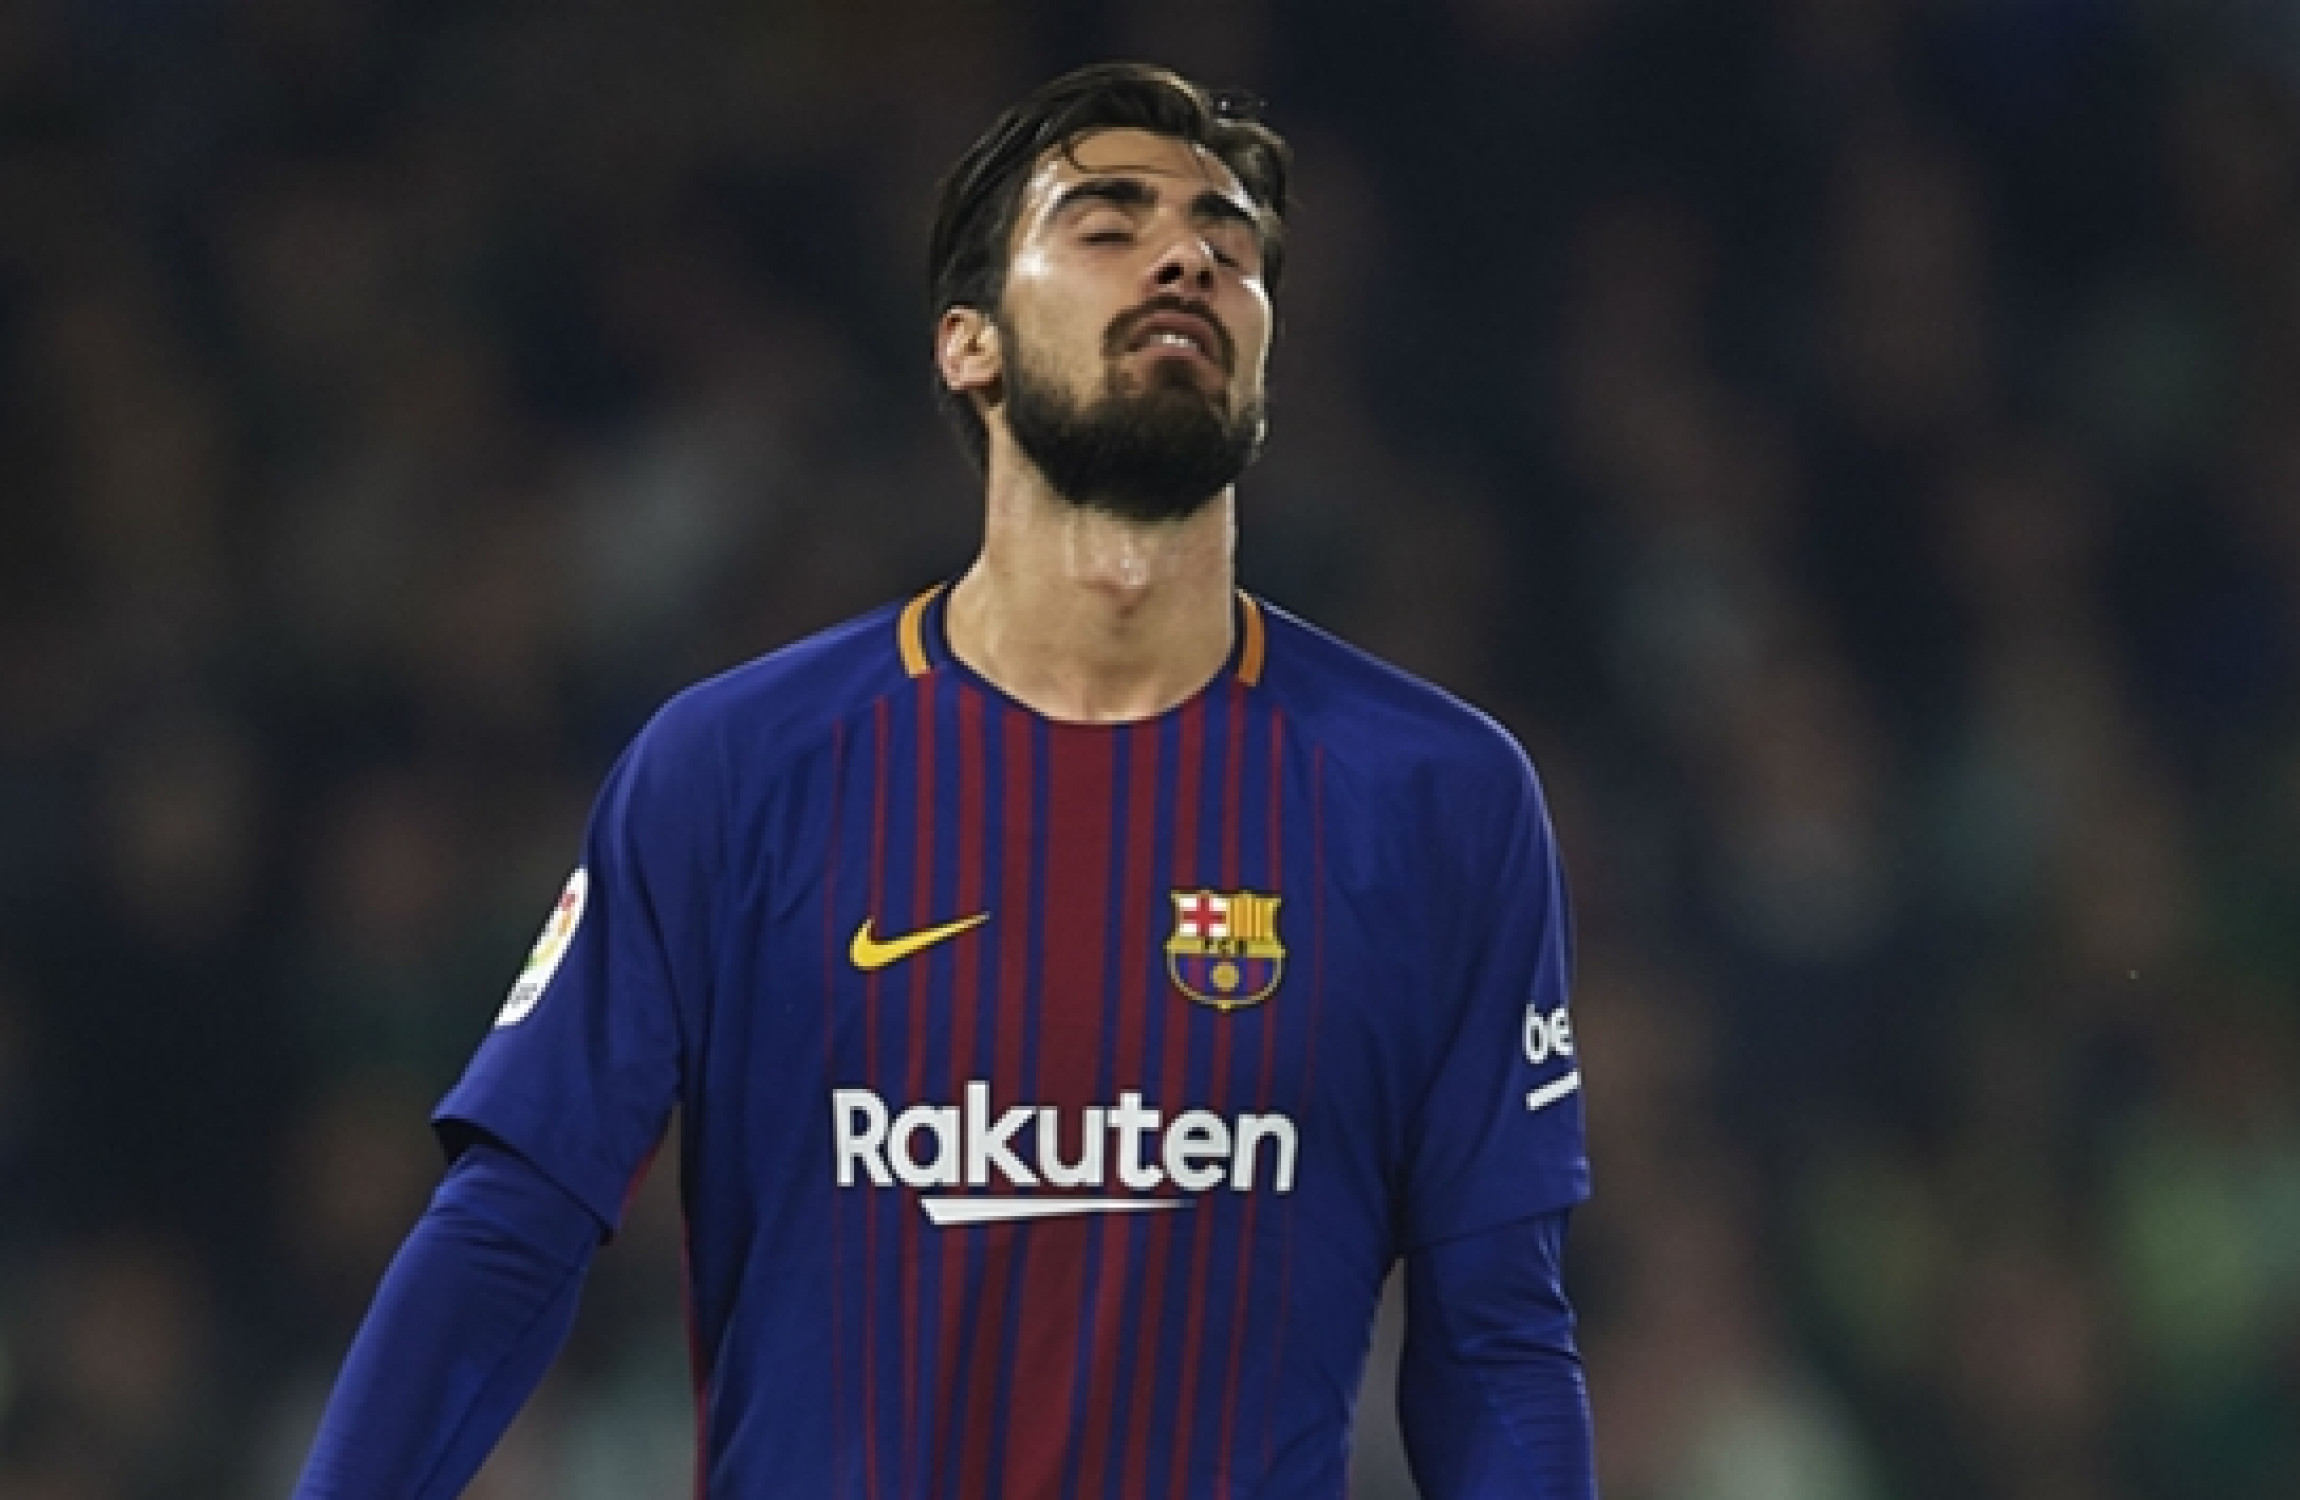 Gomes 'too ashamed to leave house' after Barca criticism